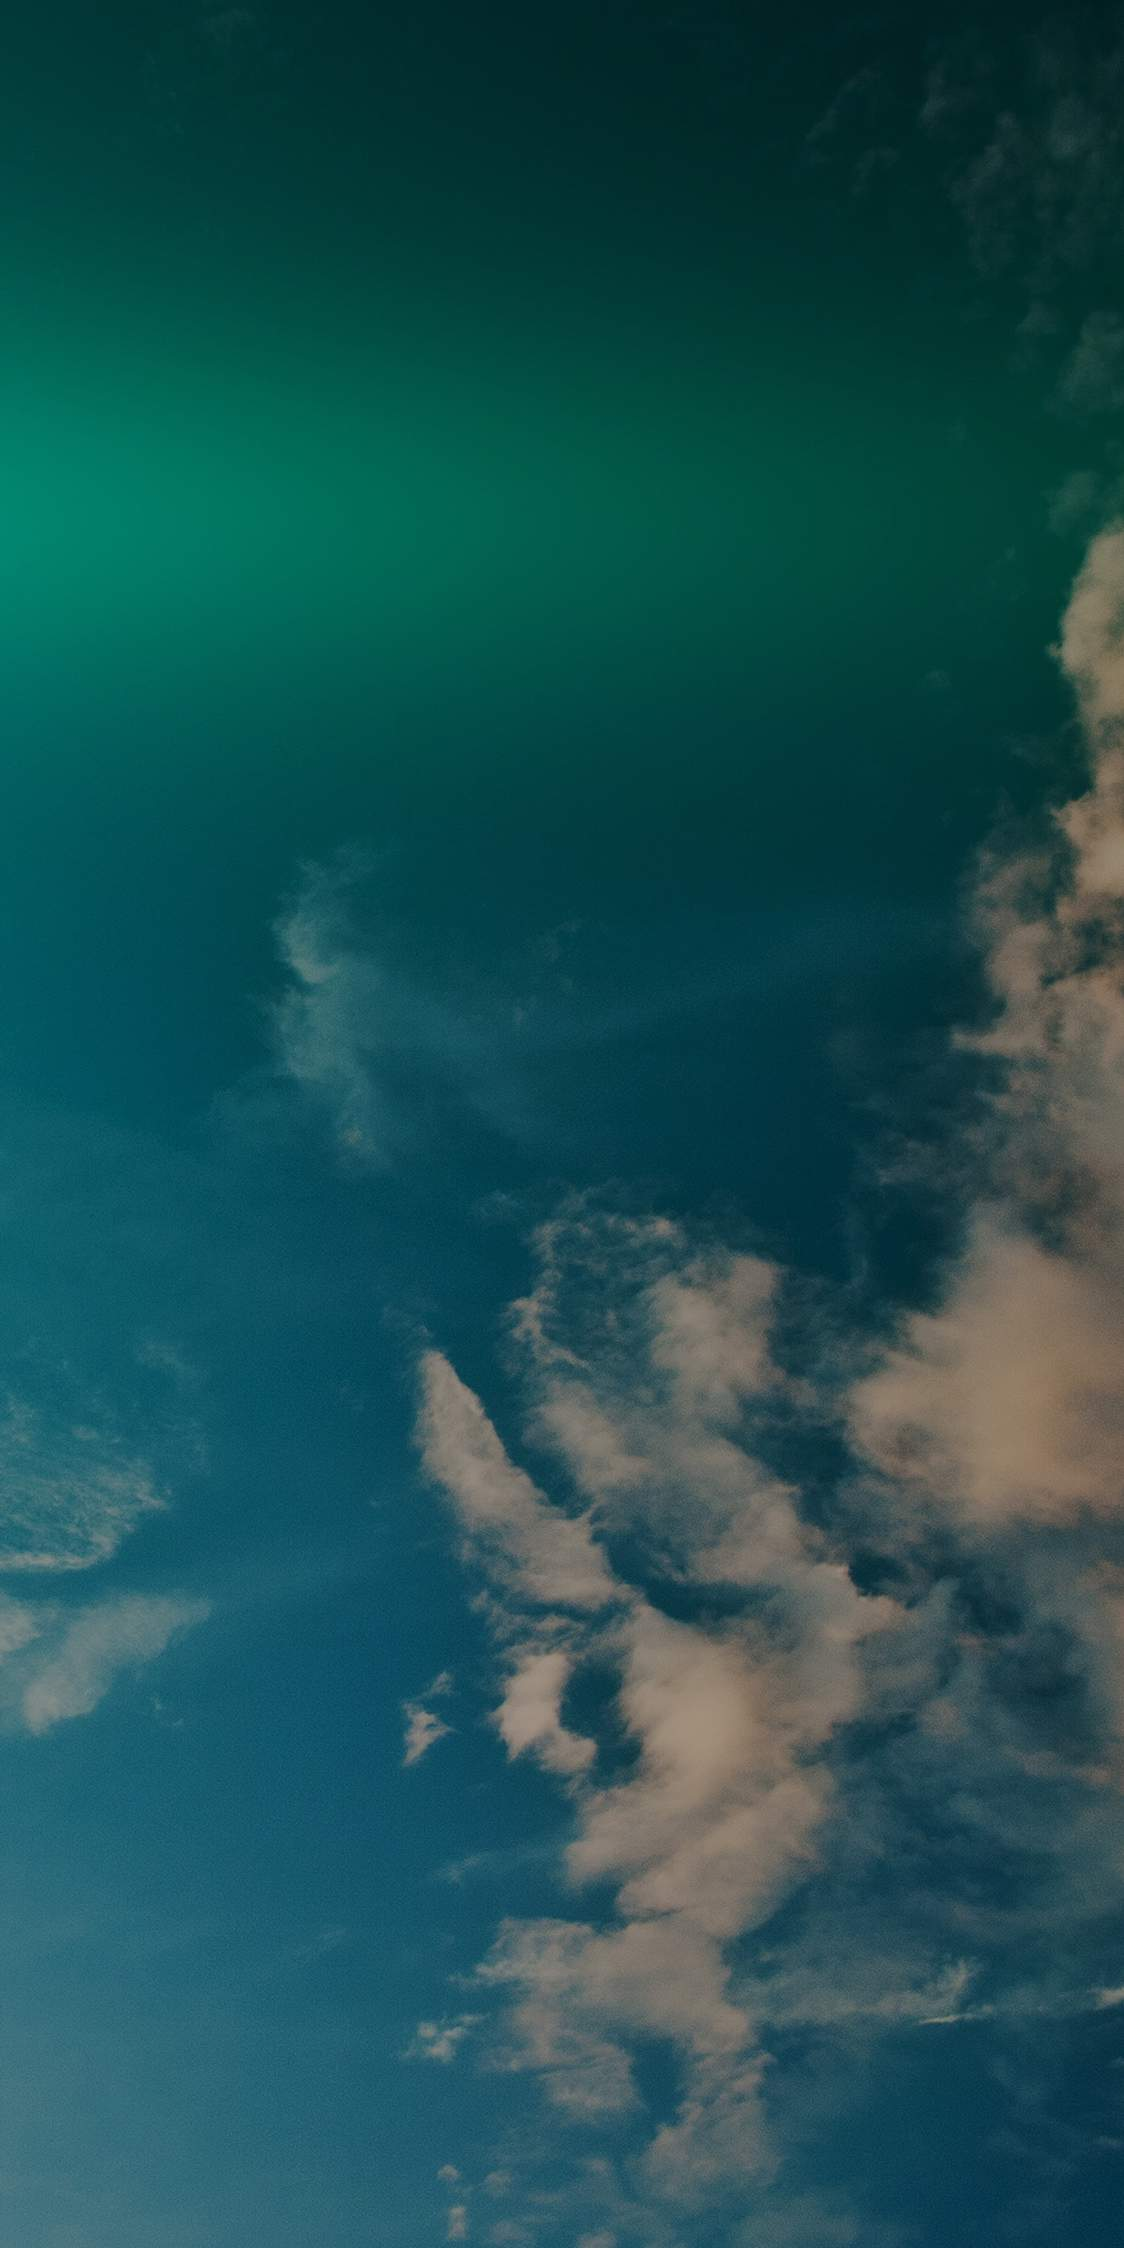 Sky Blue Green Cloud Sunny Clear Nature iPhone Wallpaper